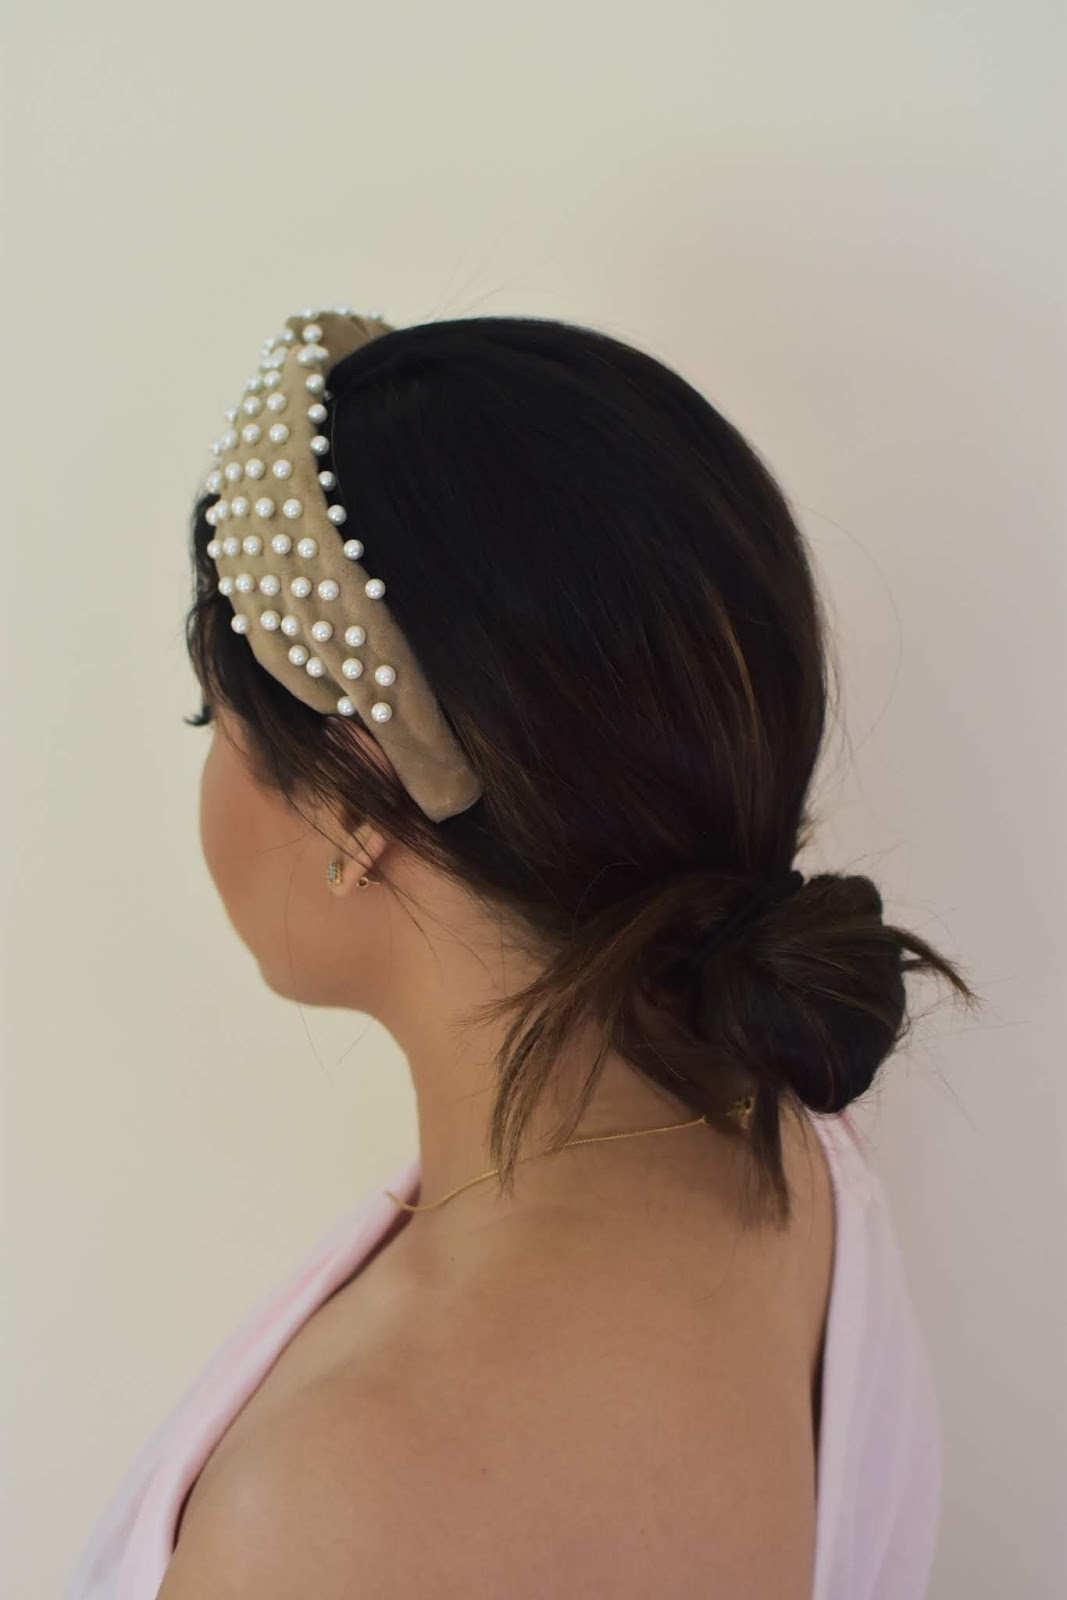 summer hairstyles, lele sadoughi headband, beauty blogger, messy bun tutorial, beachy wave